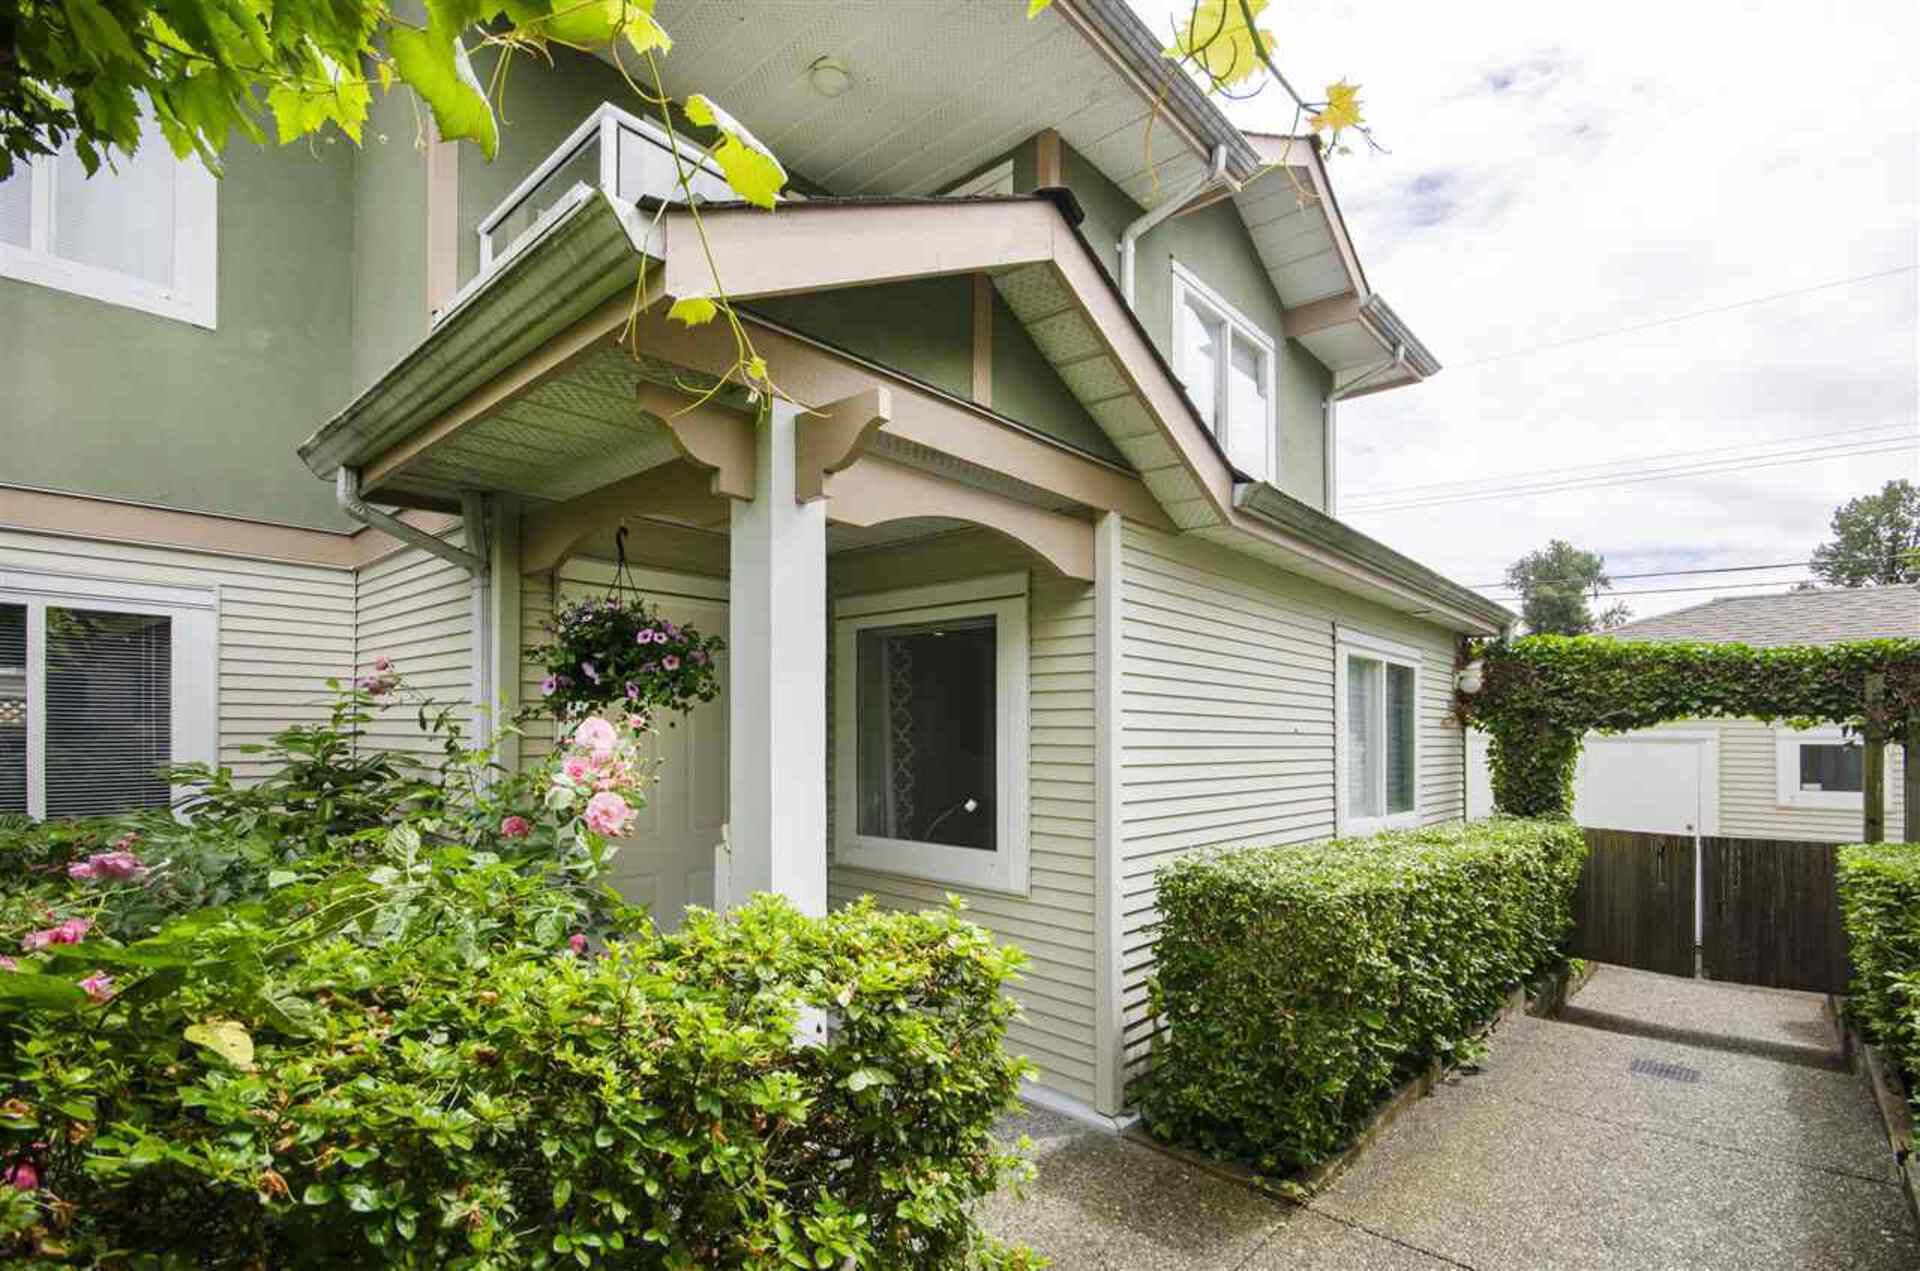 1233-w-16th-street-norgate-north-vancouver-24-1 at 6 - 1233 W 16th Street, Norgate, North Vancouver